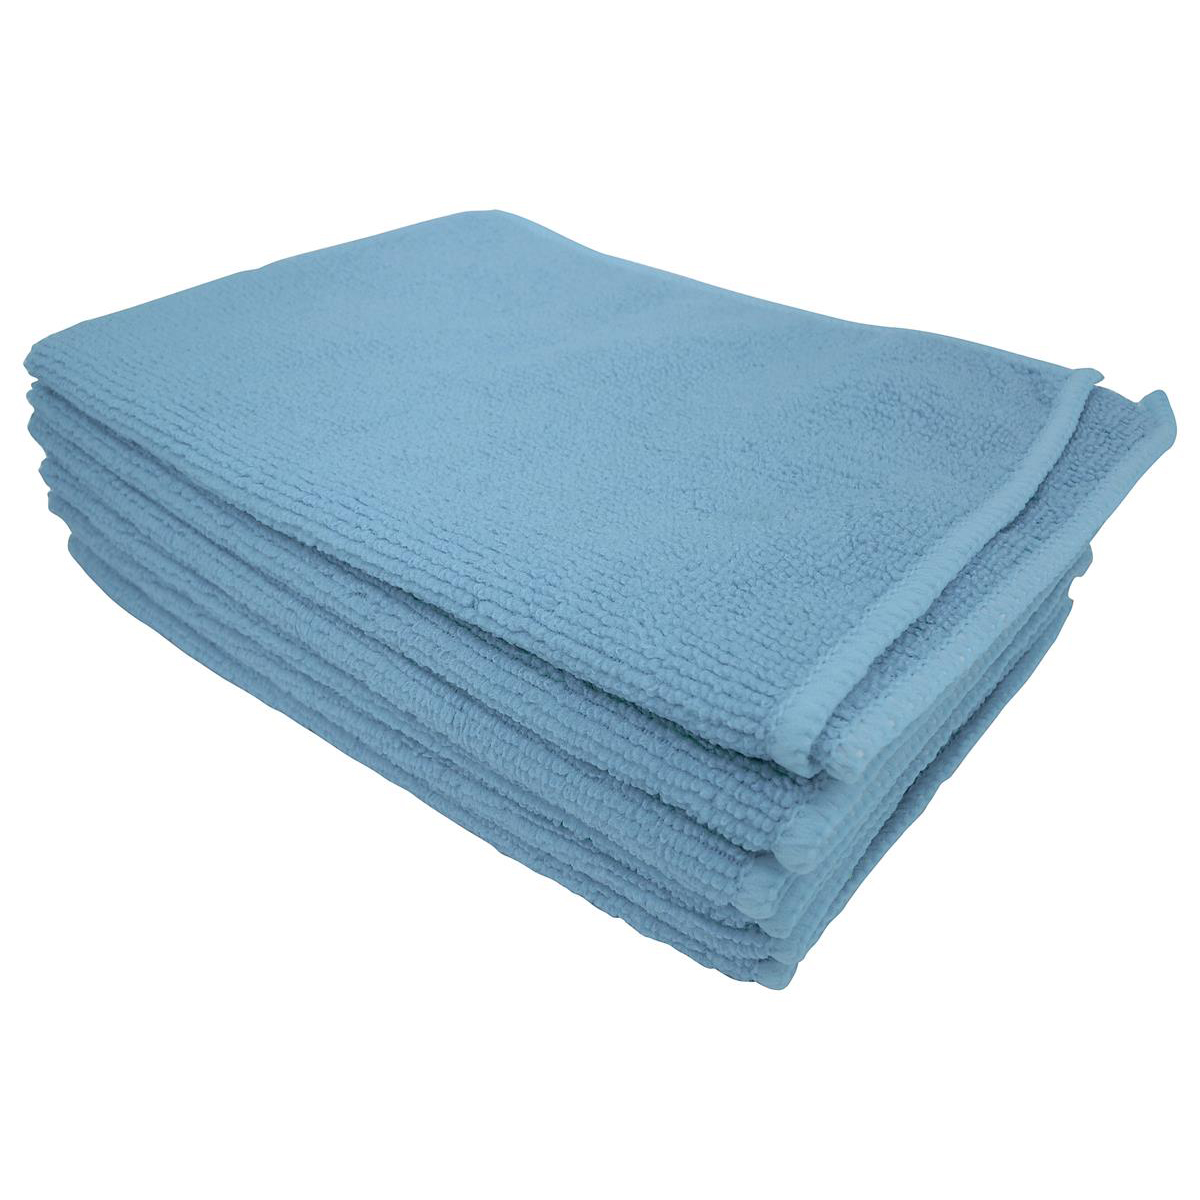 5 Star Facilities Microfibre Cleaning Cloths Colour-coded for Dry or Damp Multi-surface Use Blue [Pack 6]